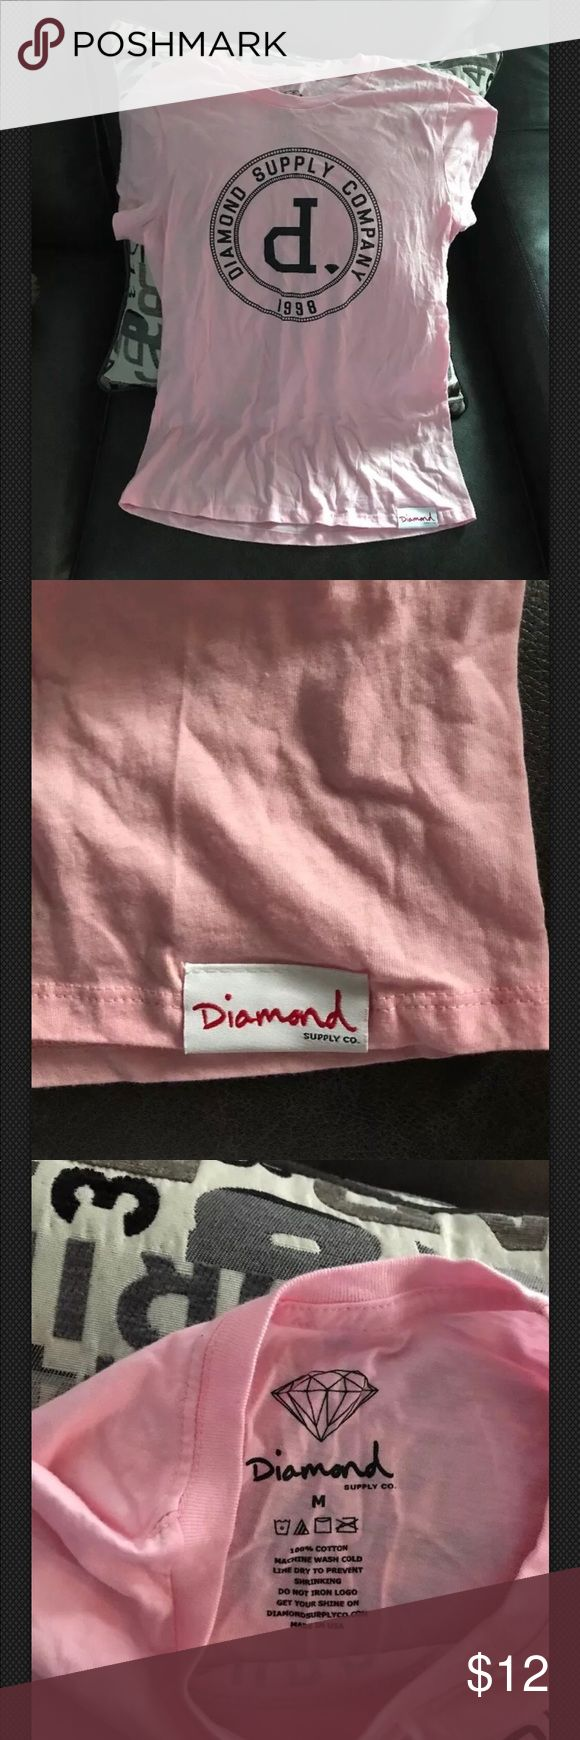 Women's Diamond Supply Company size M short sleeve Super cute in excellent condition Diamond Supply short sleeve T-shirt size M. Diamond Supply Co. Tops Tees - Short Sleeve